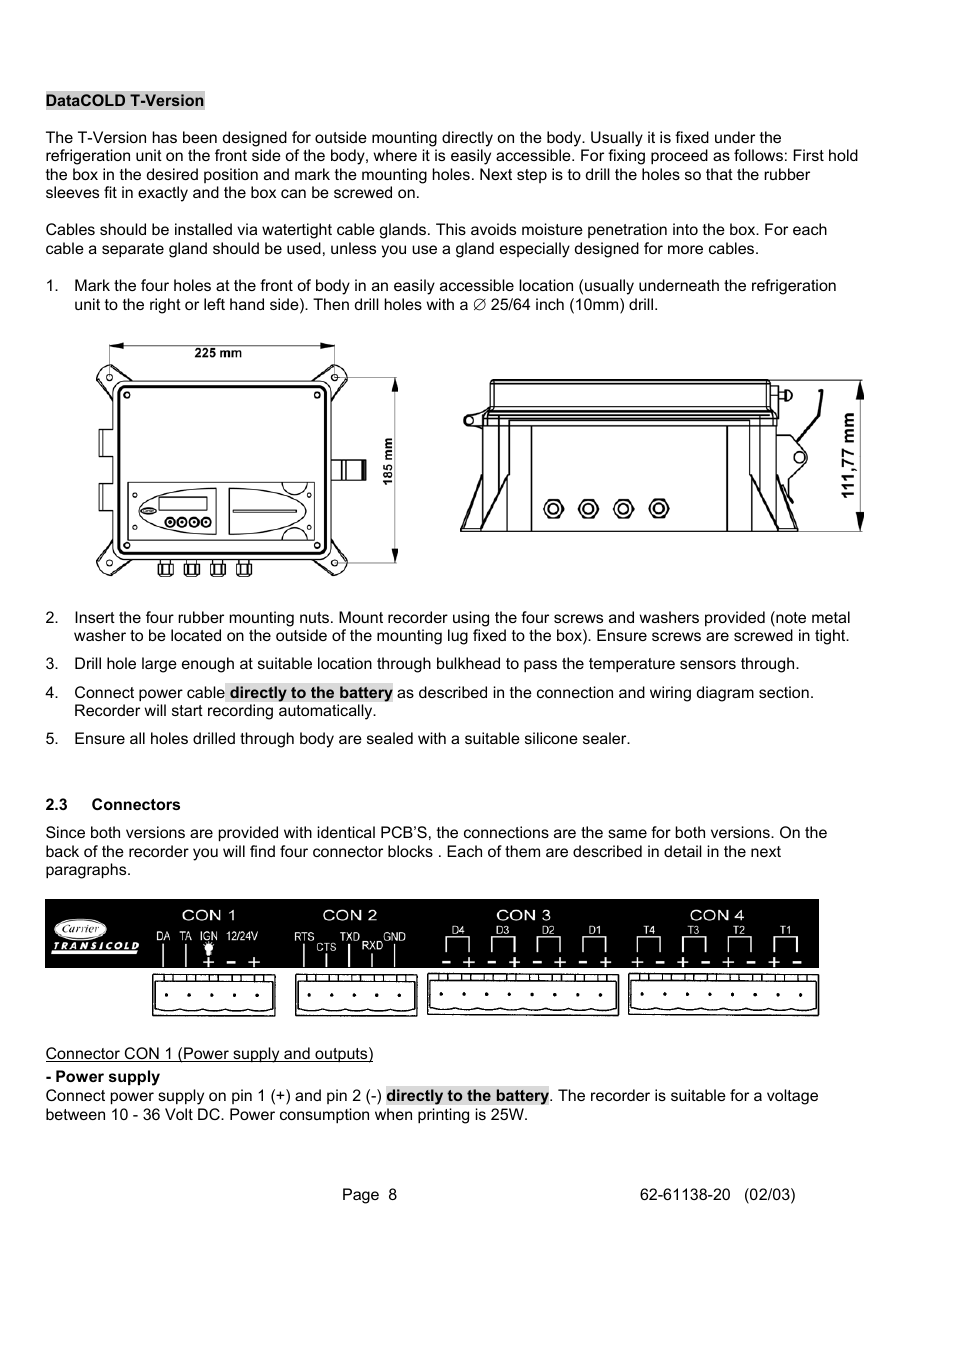 Image Righthand Side Of 2 Page Wiring Diagram Connectors 3 Carrier Datacold 500 T R User Manual 8 30